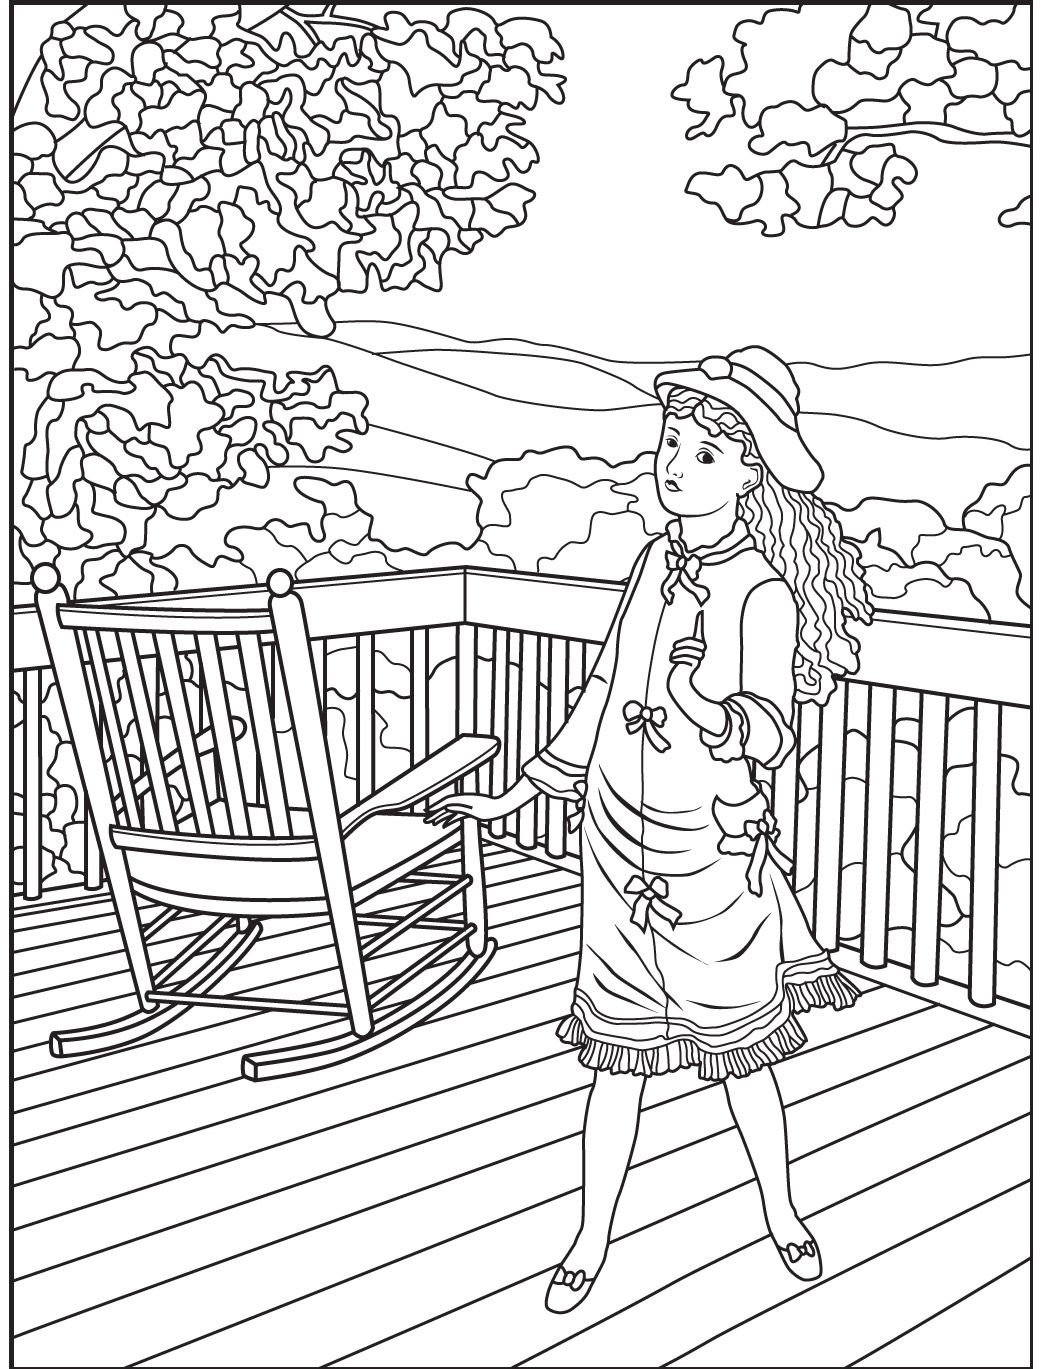 Veranda Coloring Page Colorish Free Coloring App For Adults By